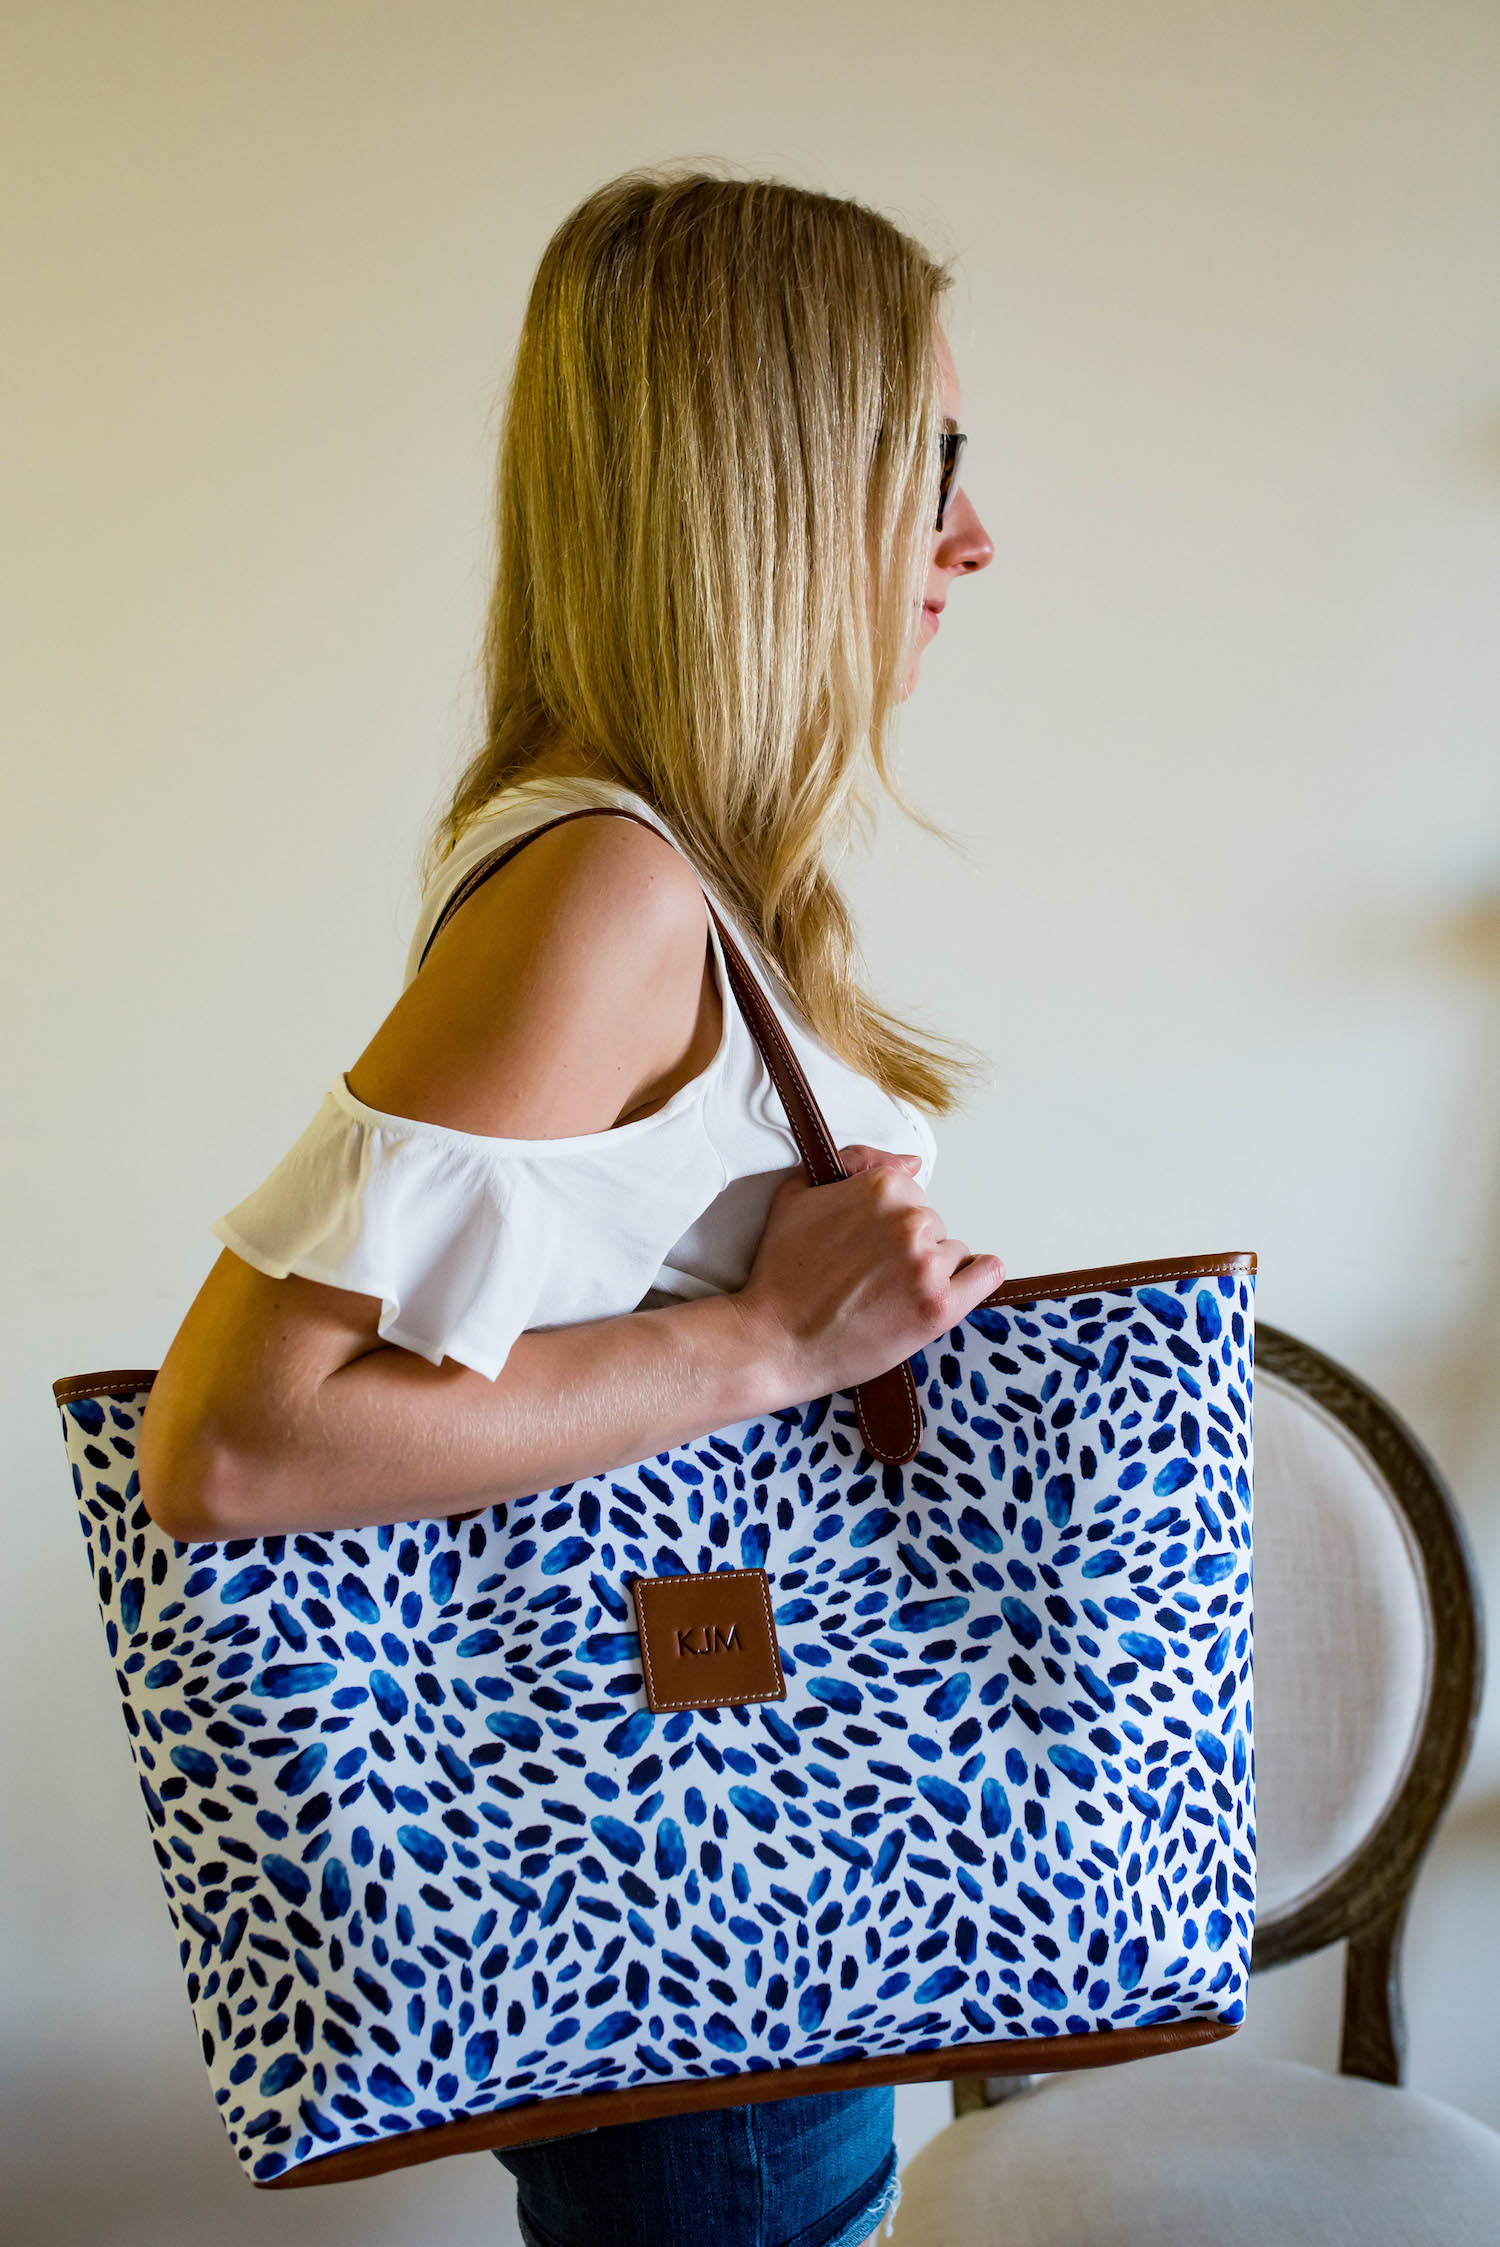 Barrington Gifts St. Anne Tote